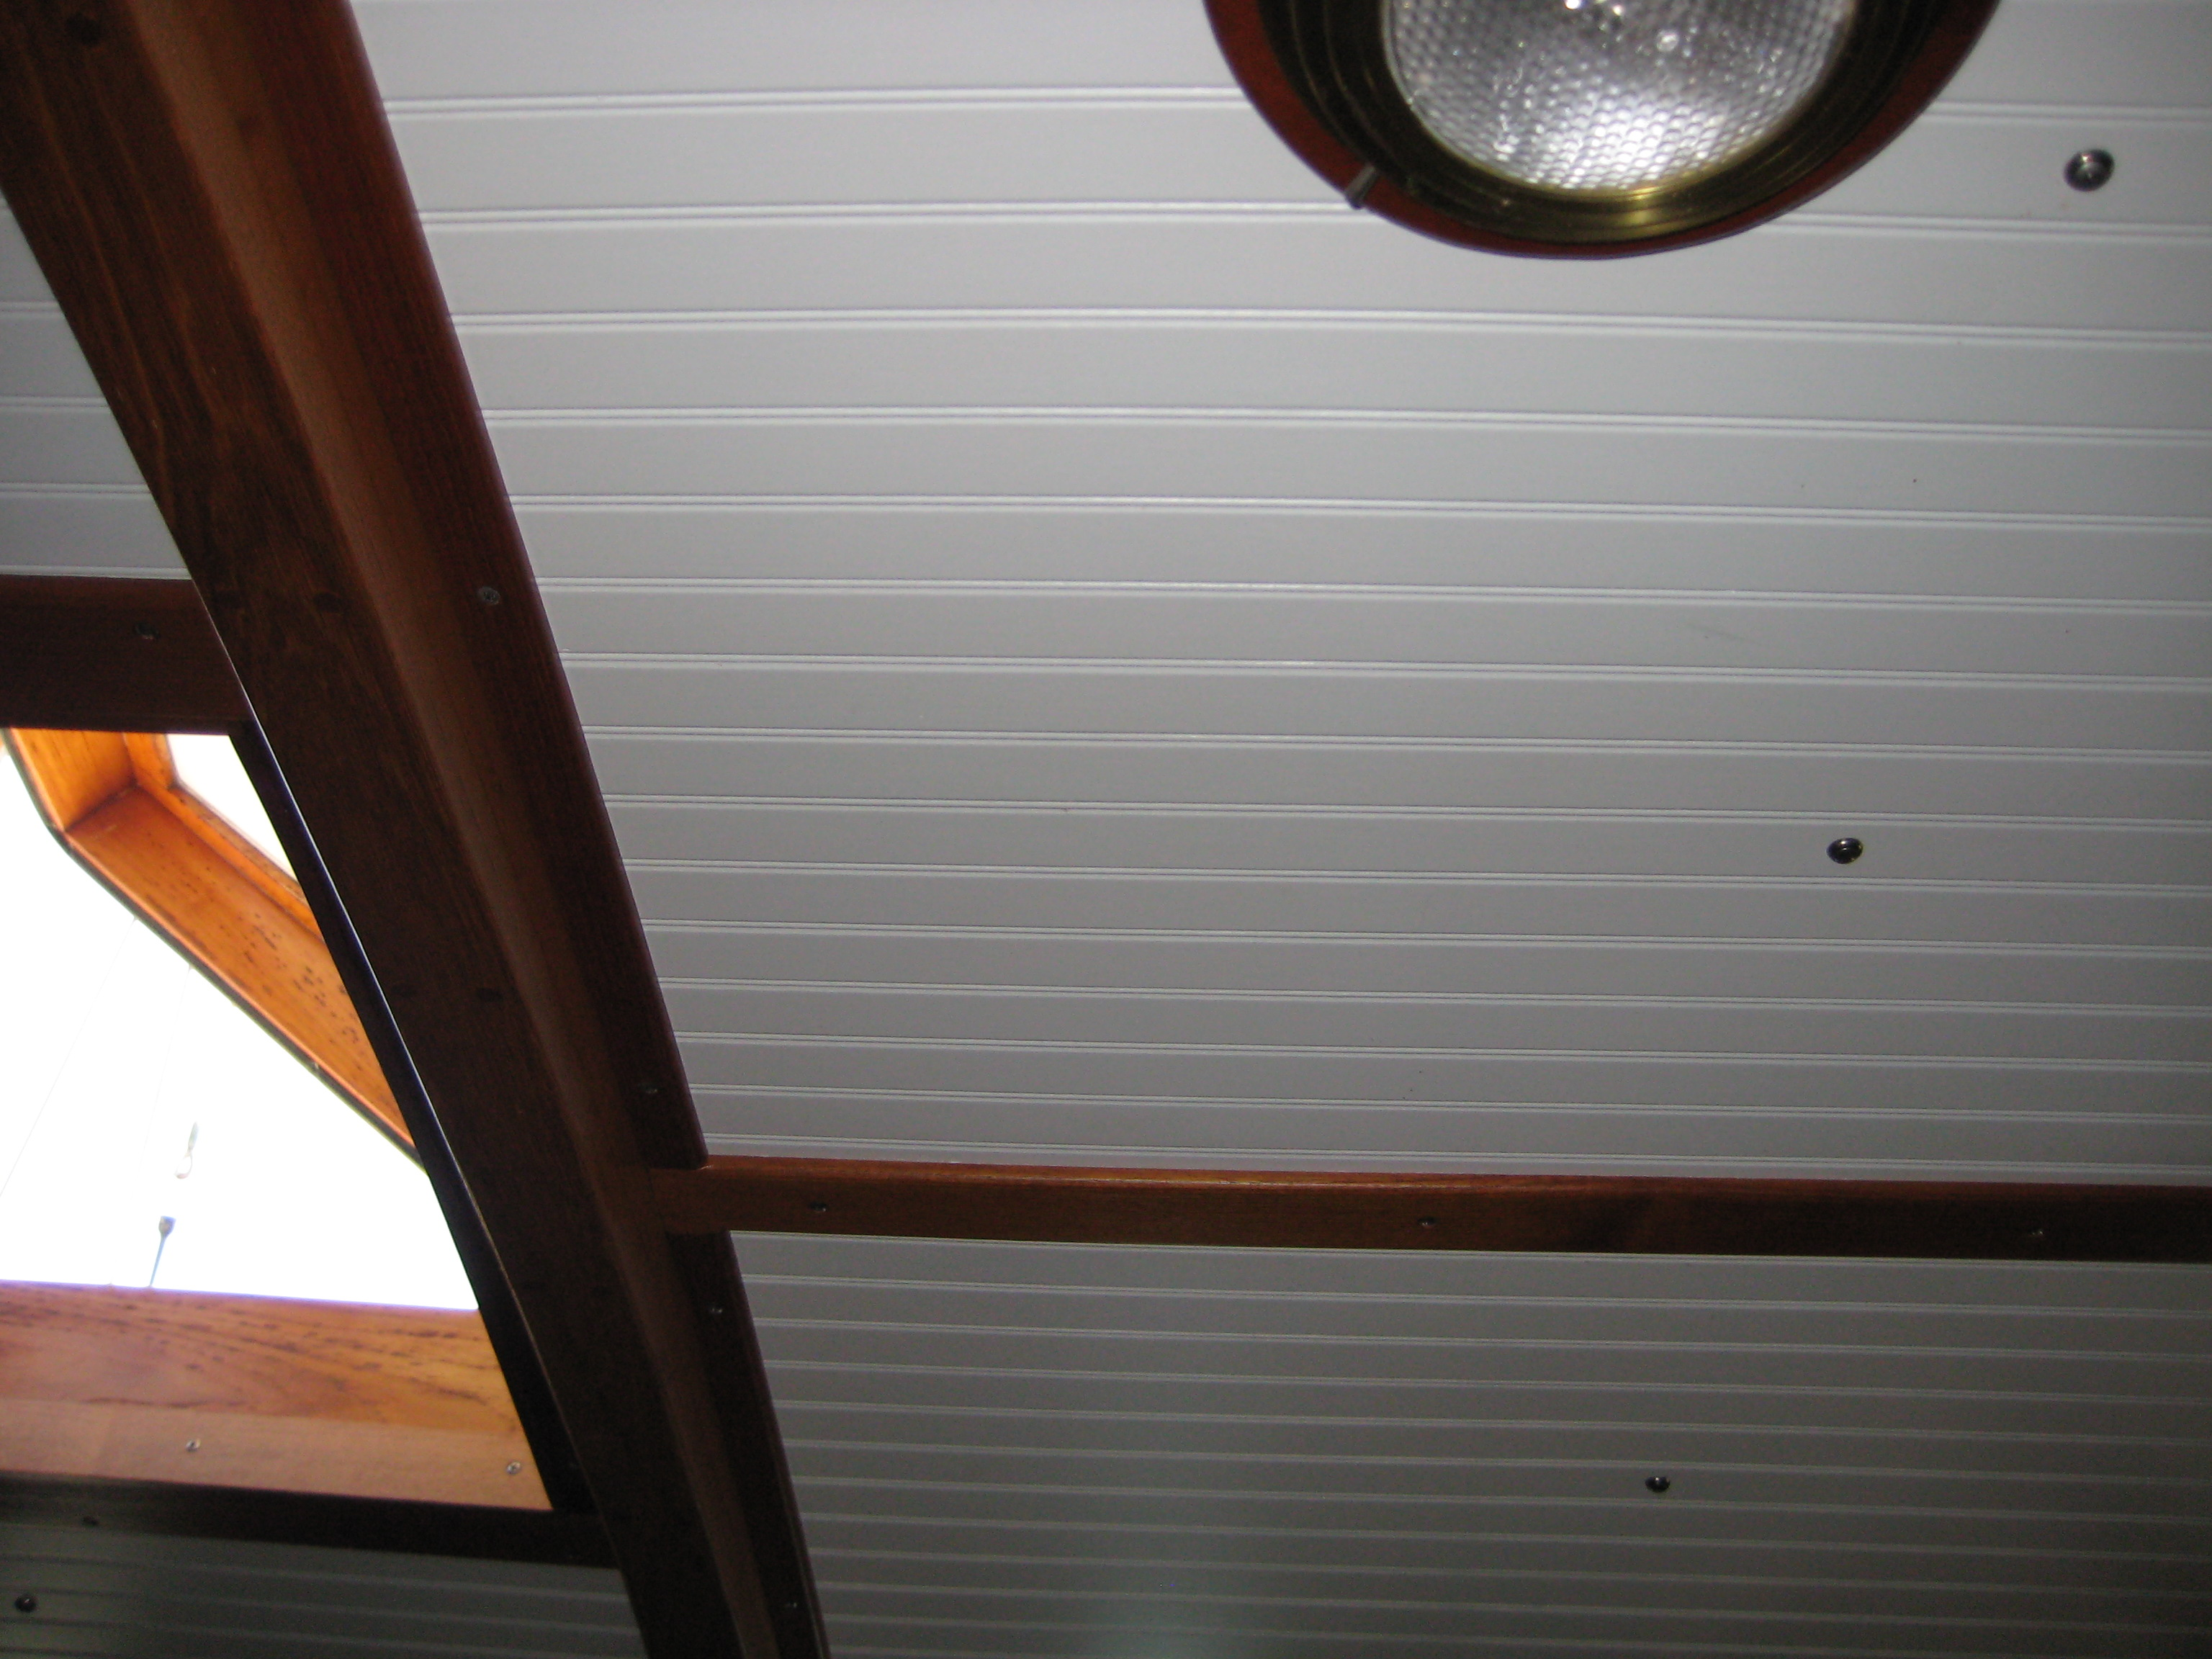 Westsail owners alliance thread headliner replacement headliner1 dailygadgetfo Choice Image